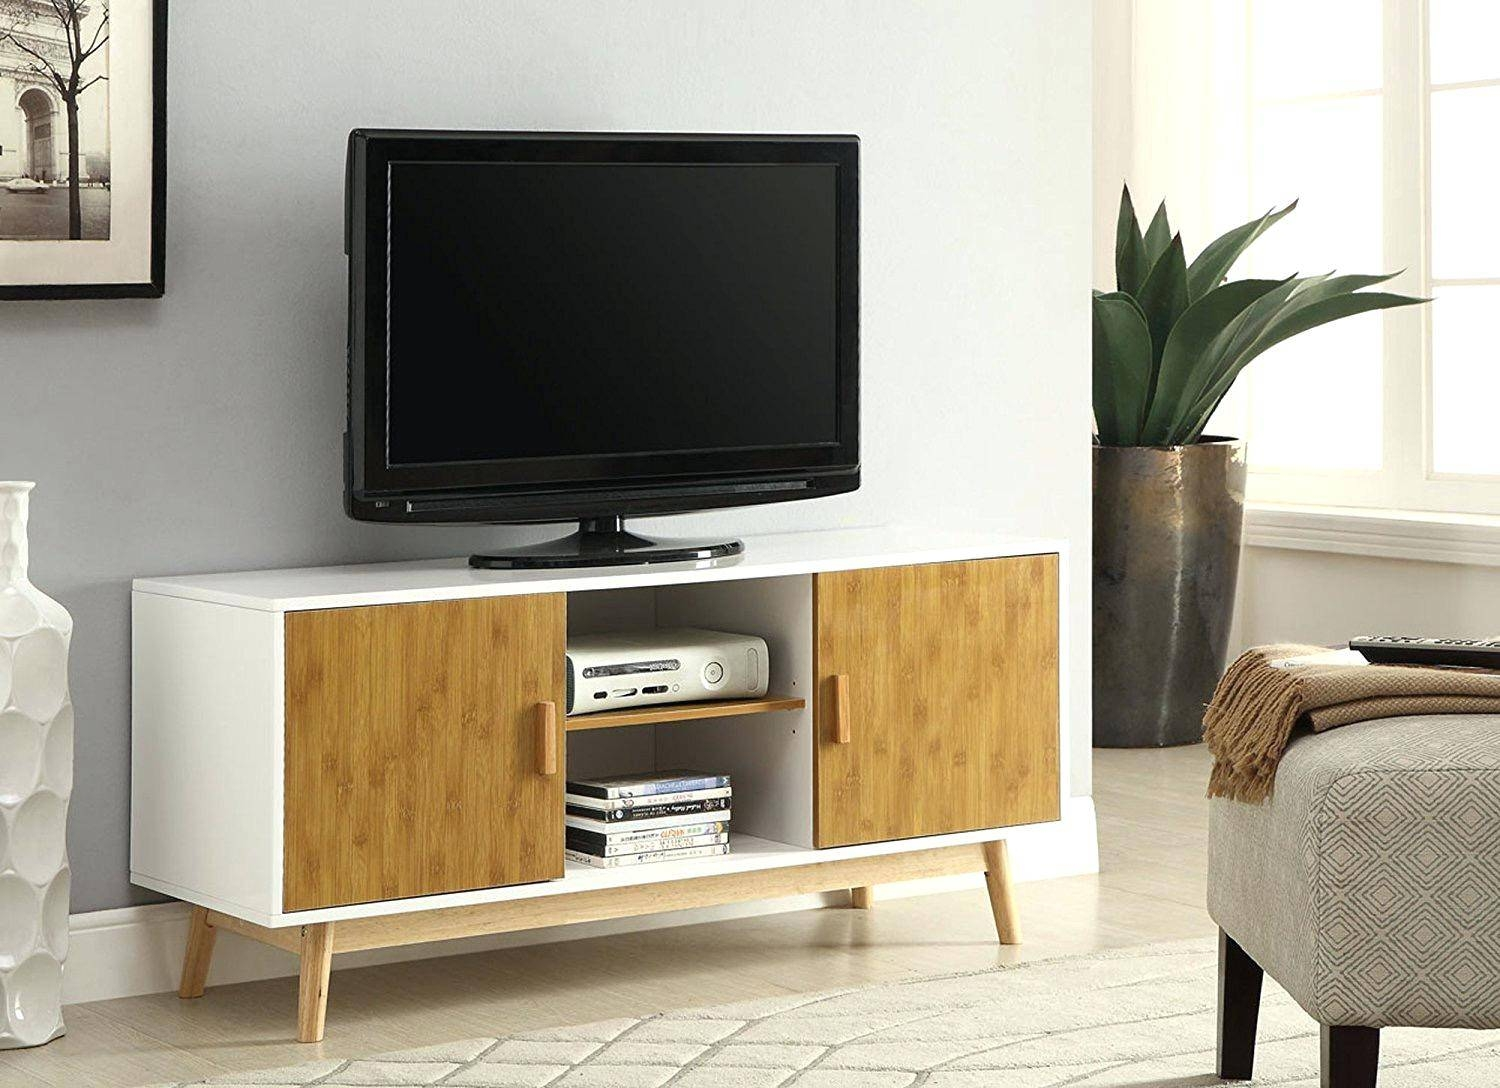 Tv Stand: Wondrous Target Corner Tv Stand For Living Space. Tv in Cornet Tv Stands (Image 14 of 15)